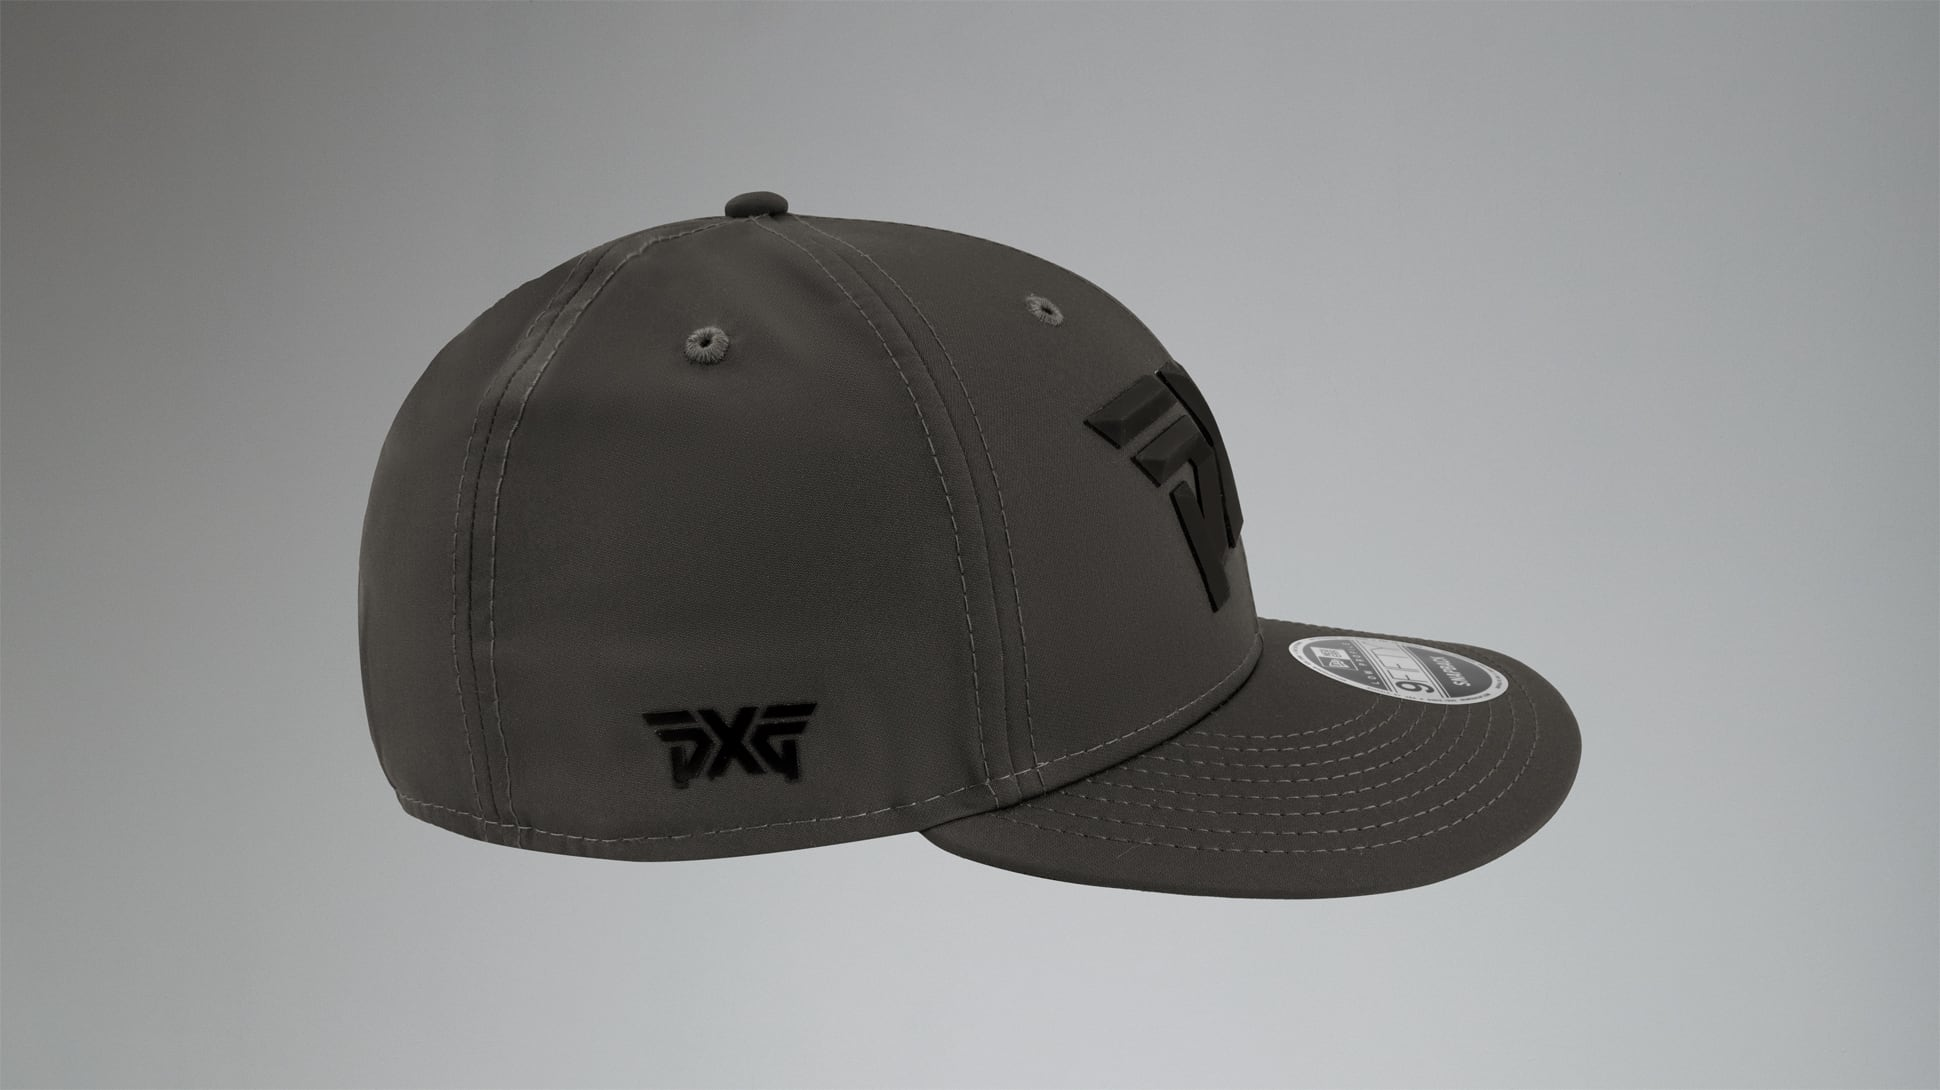 Faceted Logo 9FIFTY Low Profile Snapback Cap Image 3